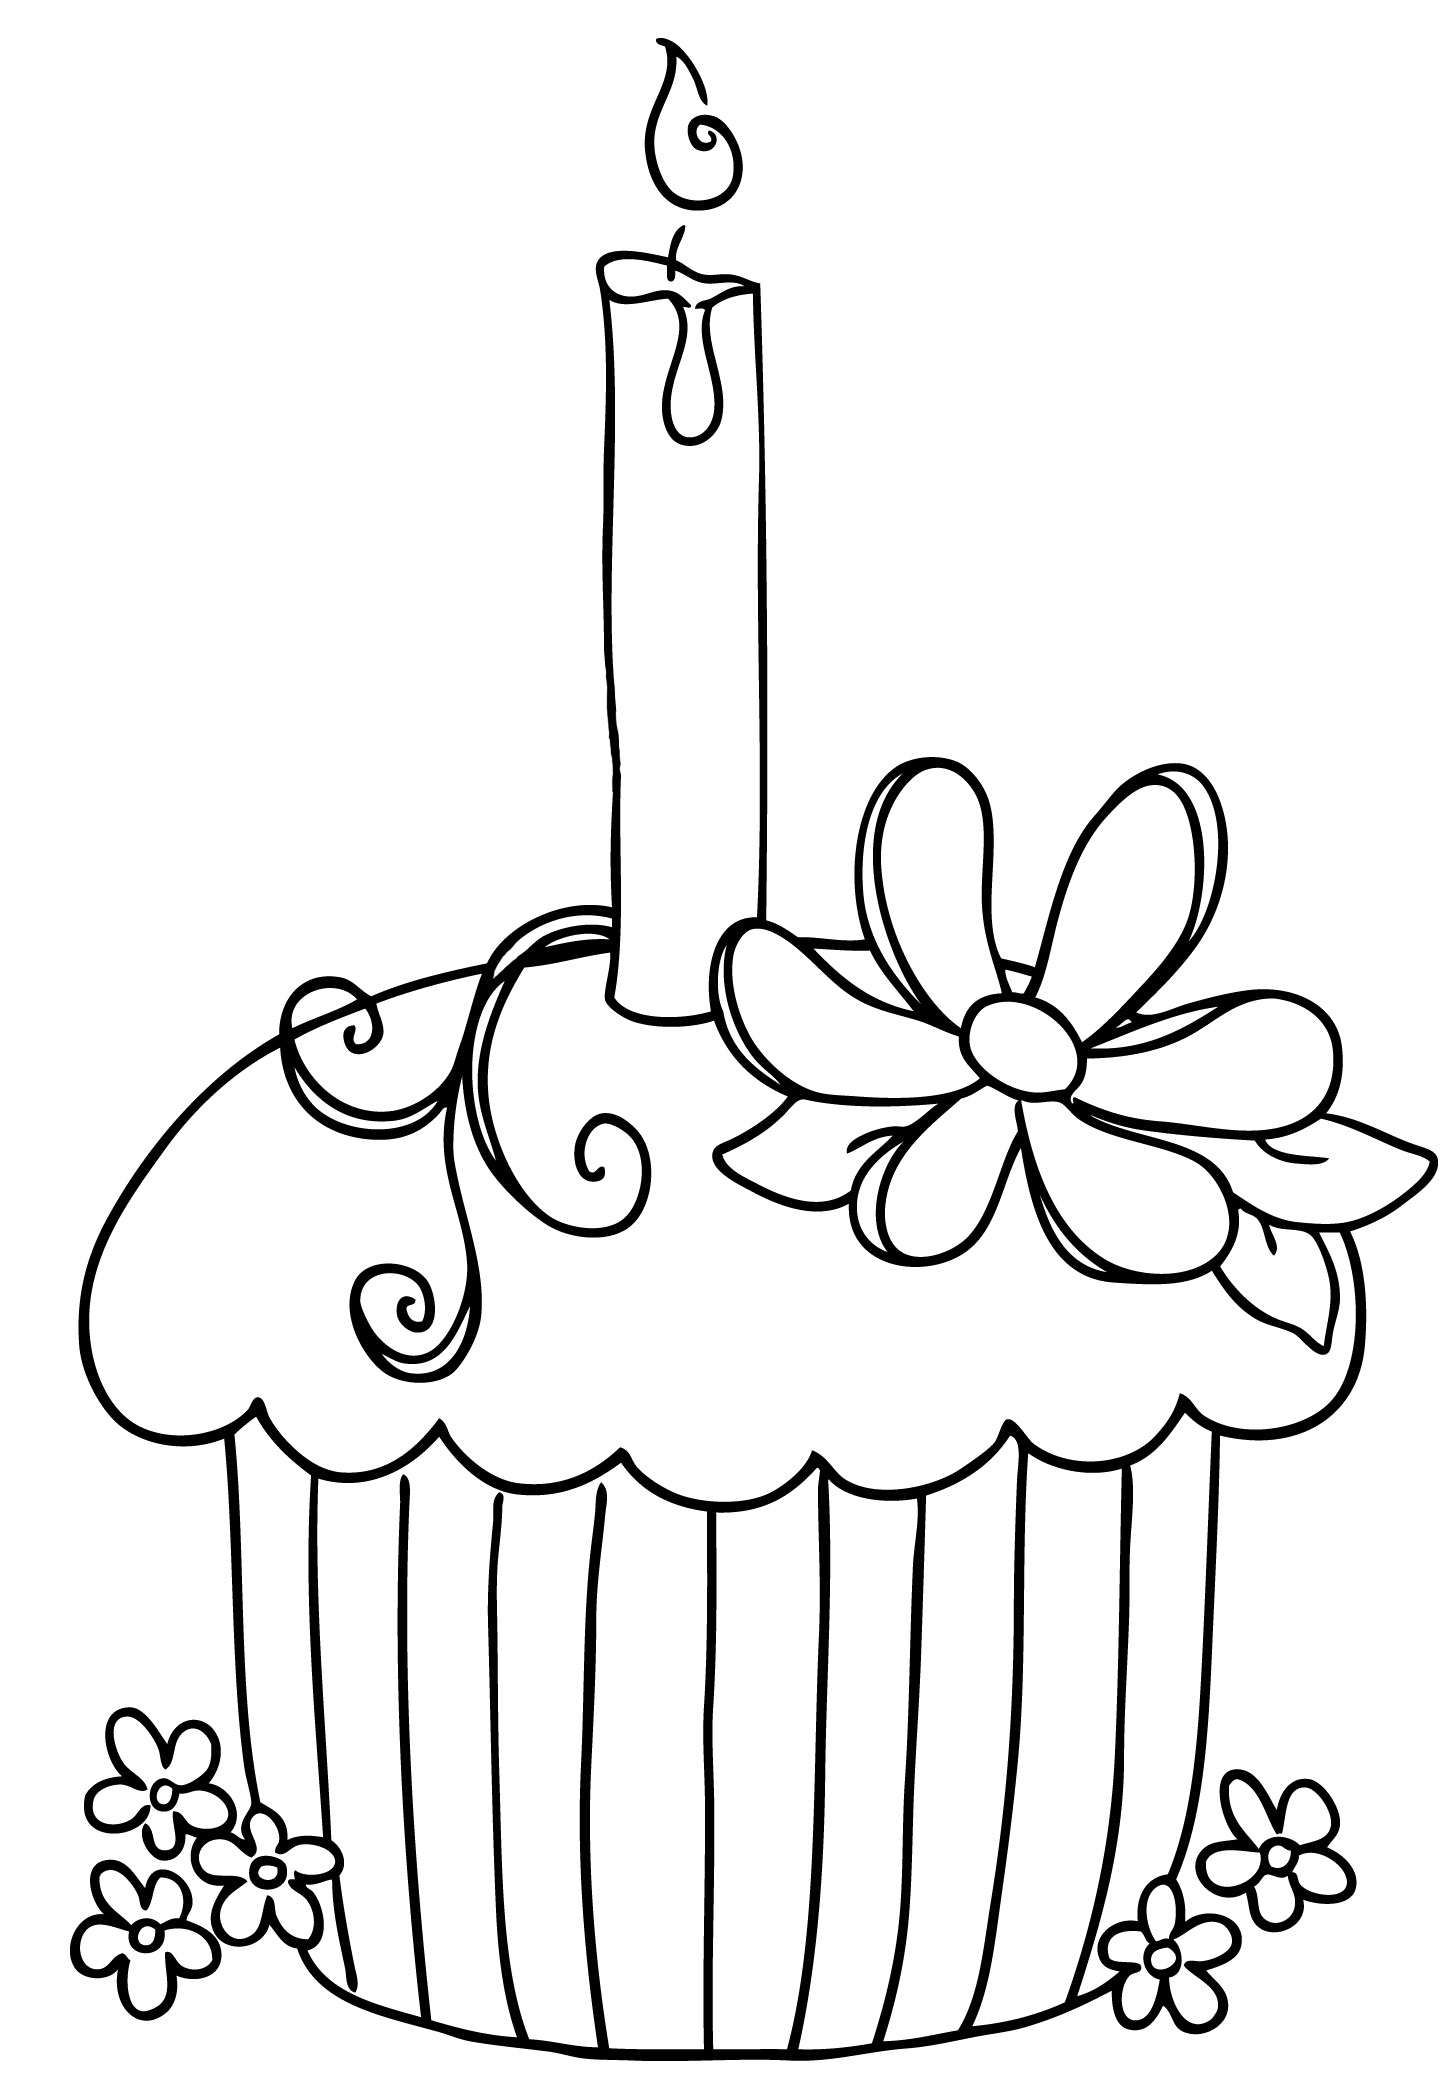 Birthday Candles Clipart Black And White 20 Free Cliparts